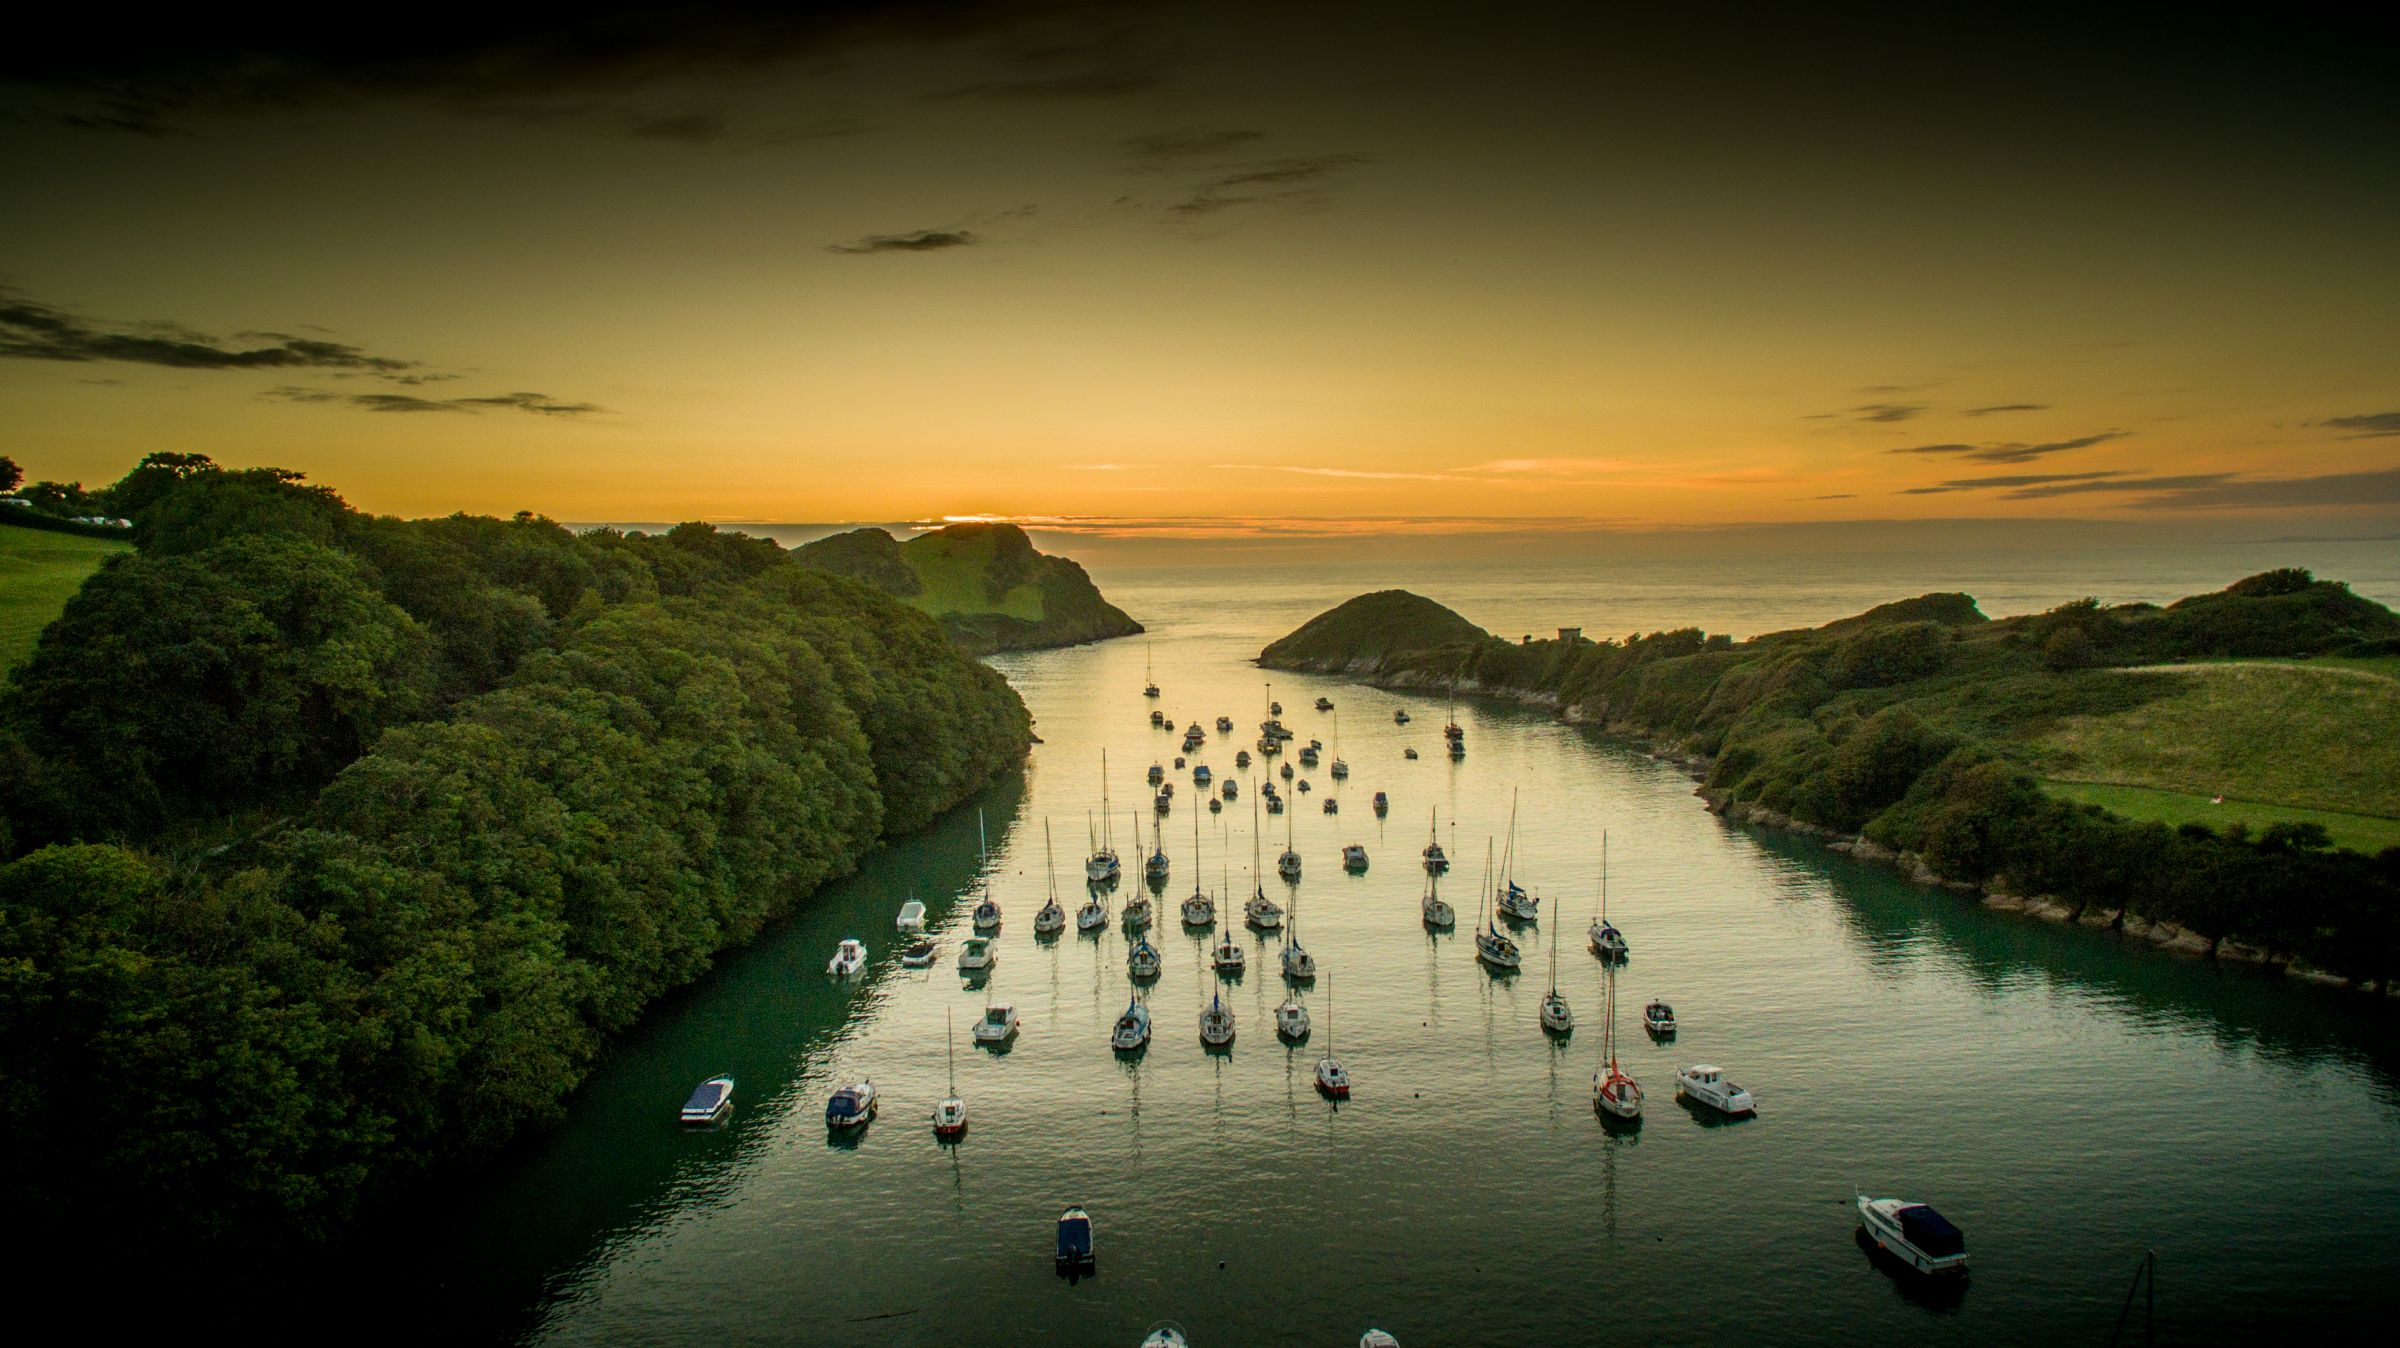 Watermouth Cove at sunset over water with small boats.